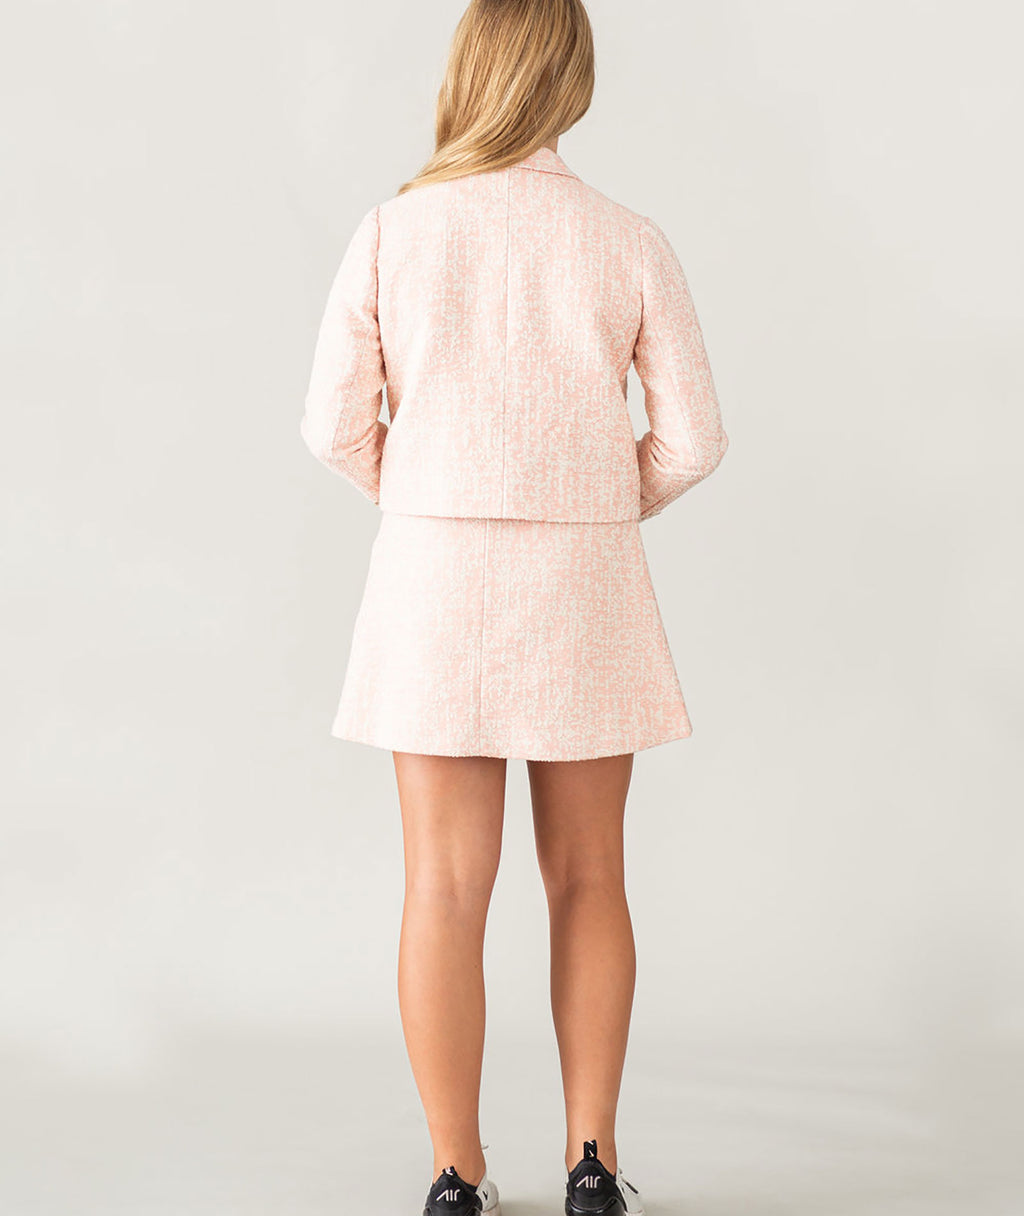 Jeune Otte Girls Blush Everly Skirt